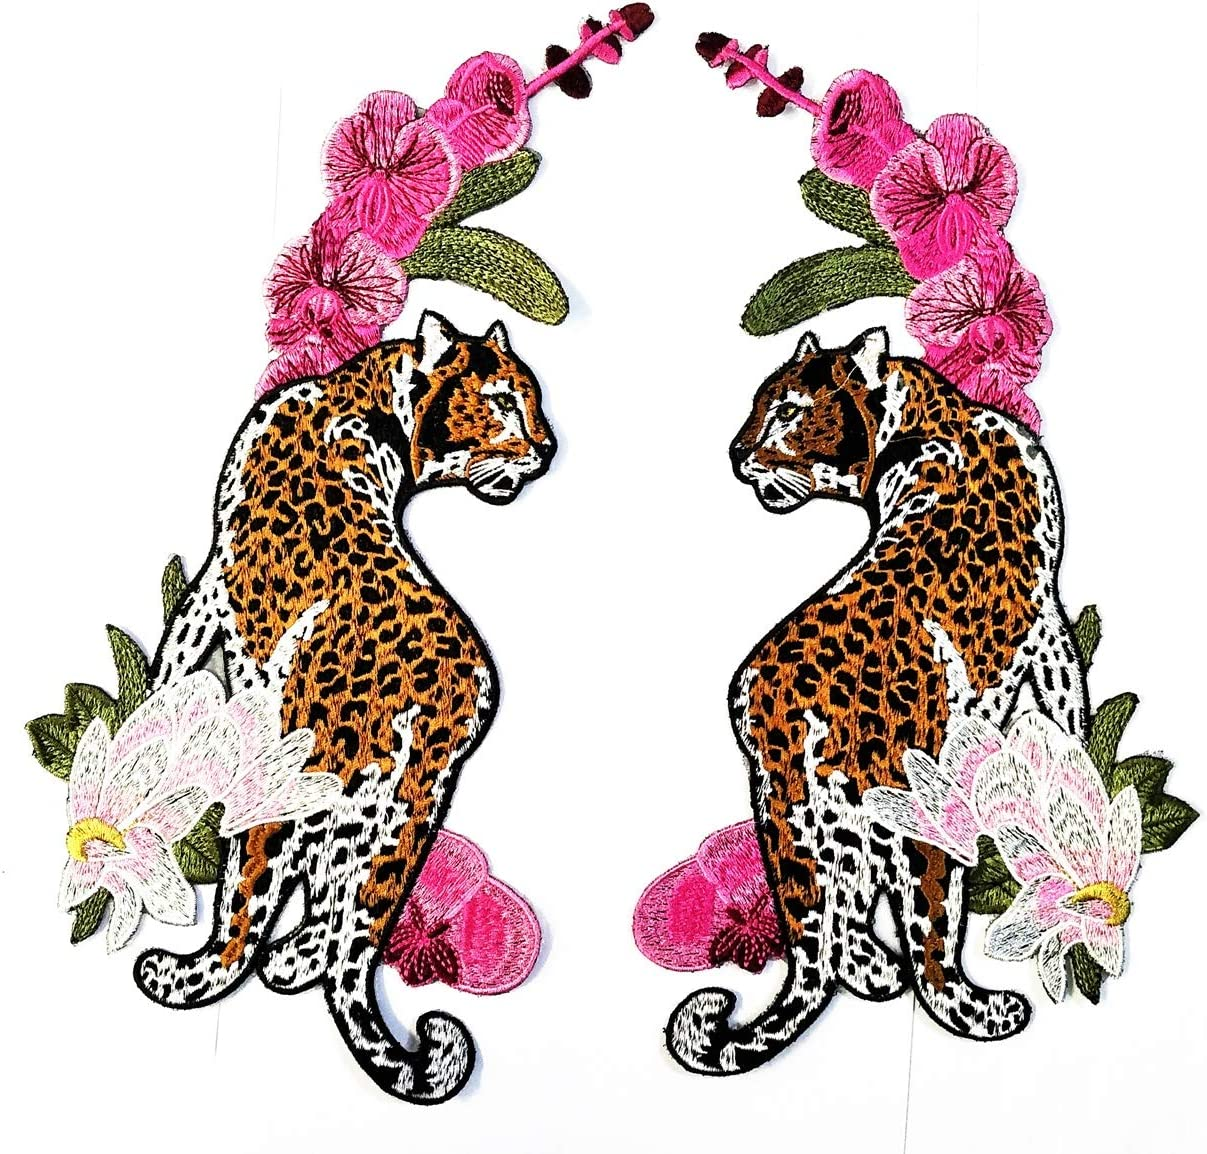 Big Jumbo Leopard Tiger Pink Orchid Flowers Cartoon Patch Embroidered Applique Badge Iron On Sew On Emblem DIY Logo Jacket Vest Shirt T Shirt Embroidery (13)